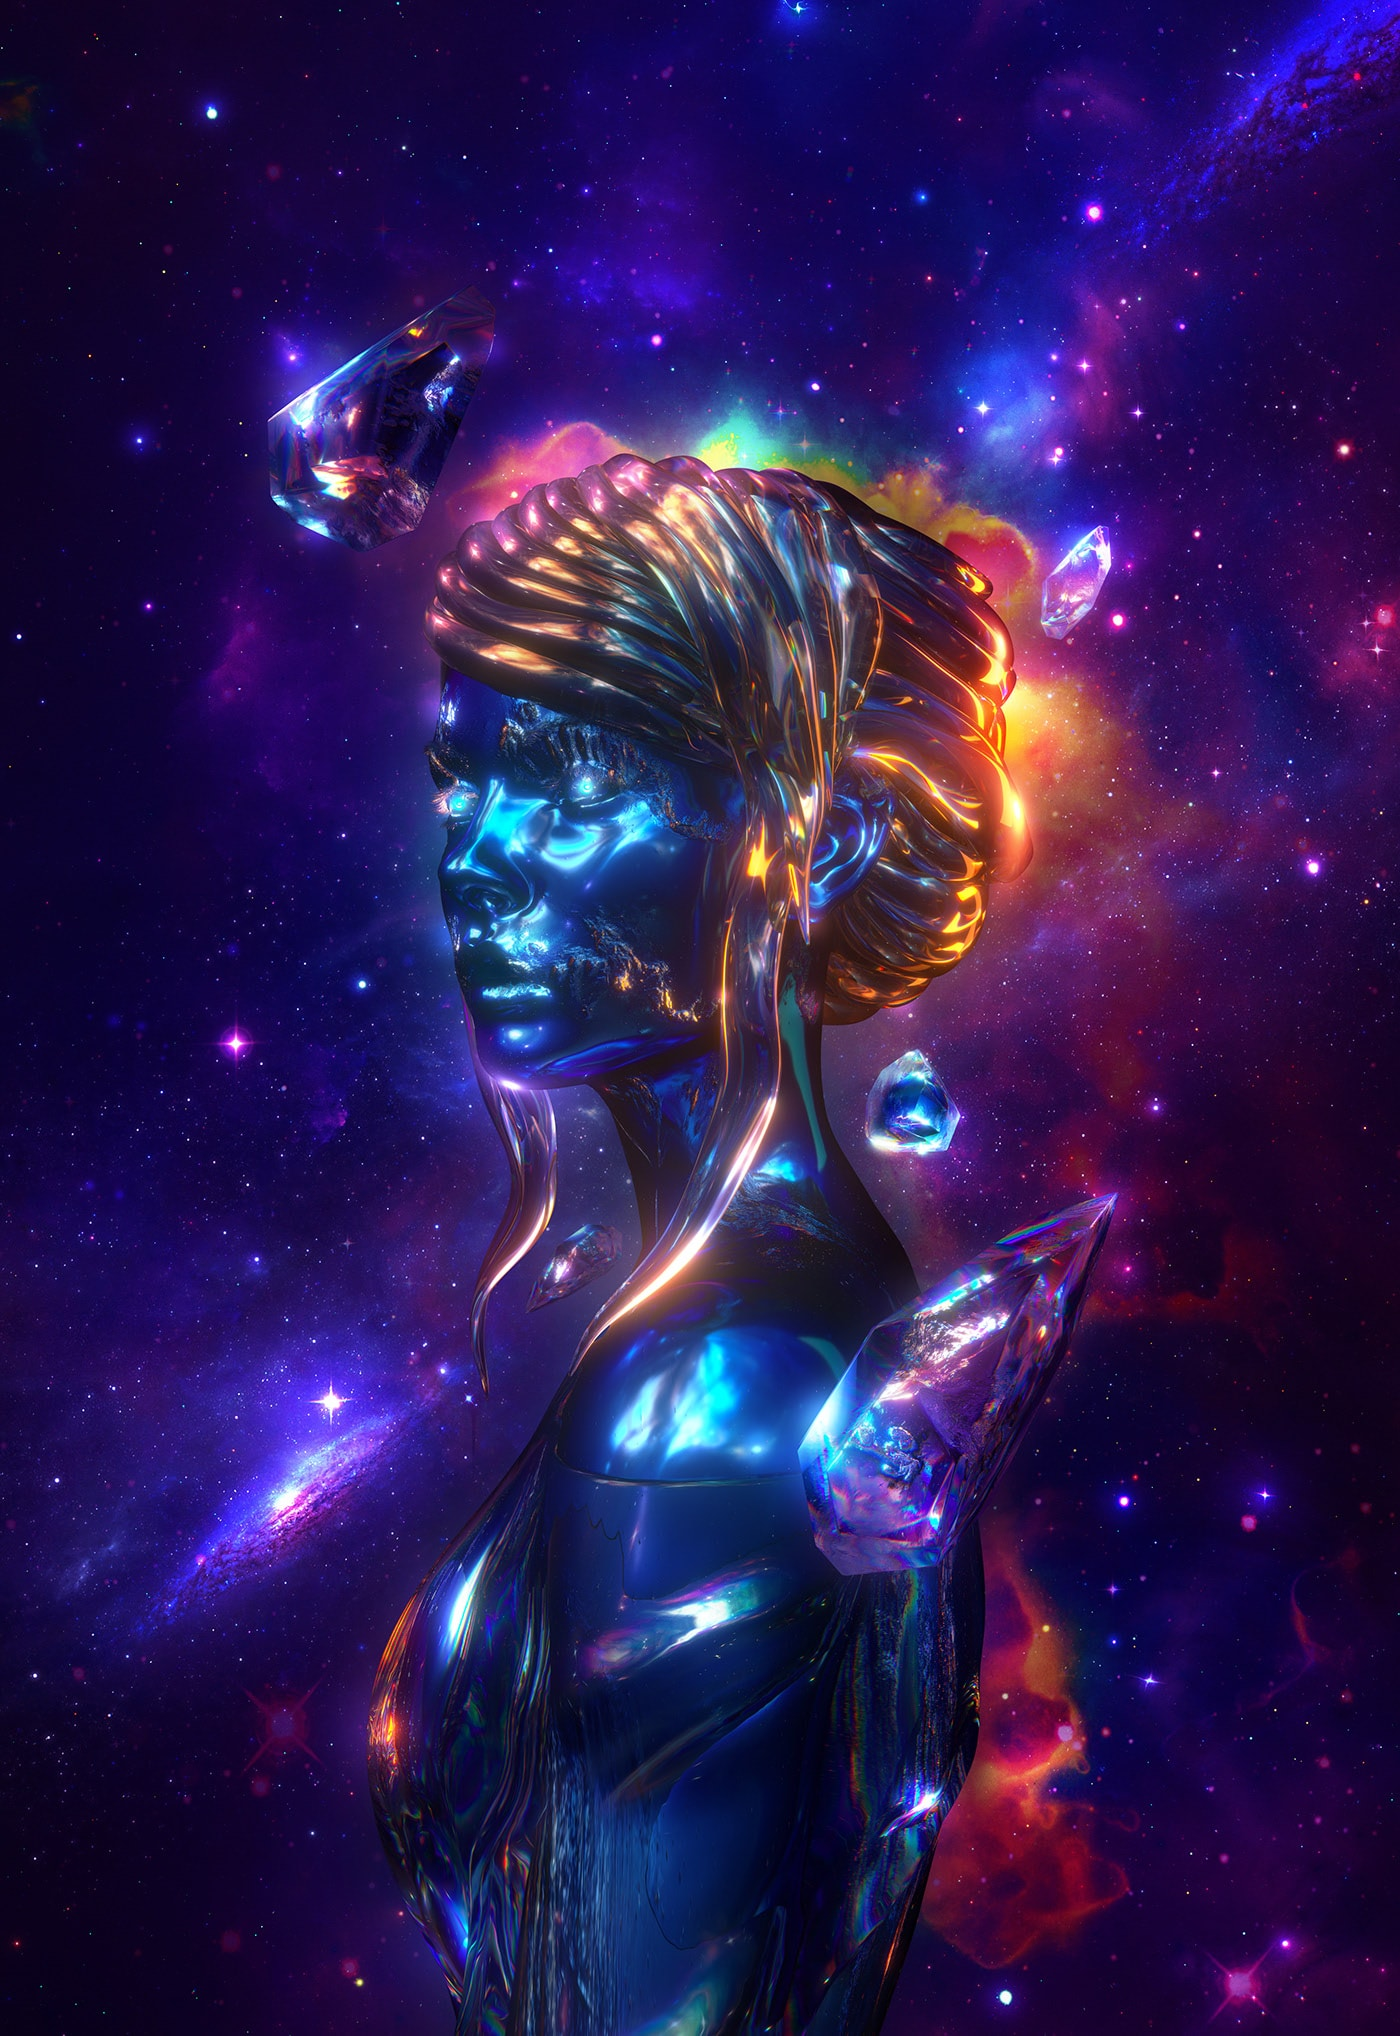 astrology houses, cosmos, cosmos lady